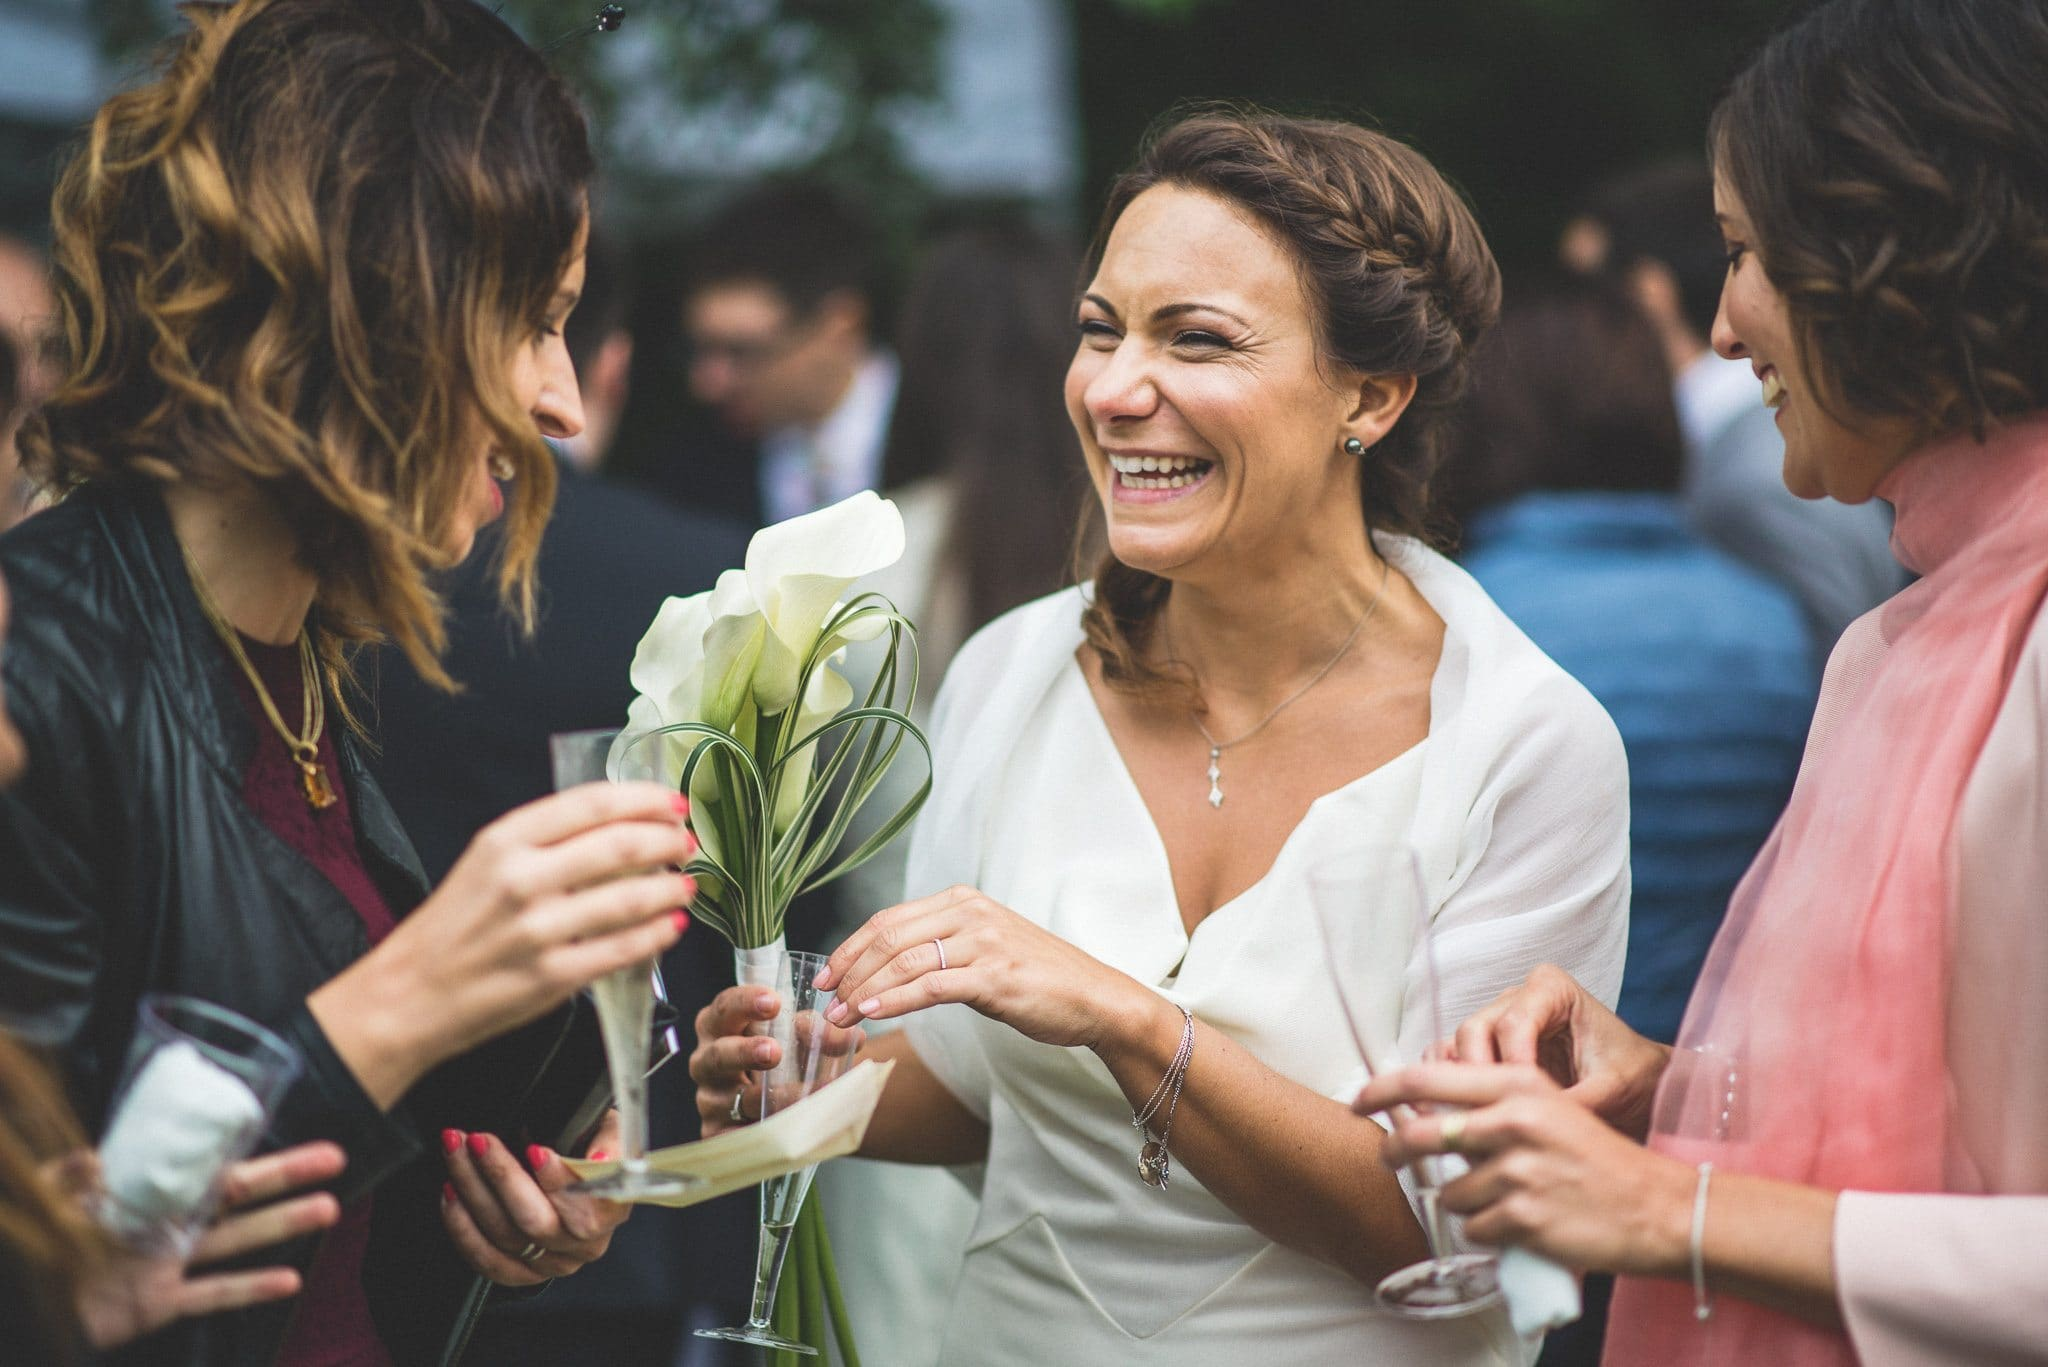 Ilaria laughs with female guests after her wedding ceremony, while holding her bouquet of calla lilies